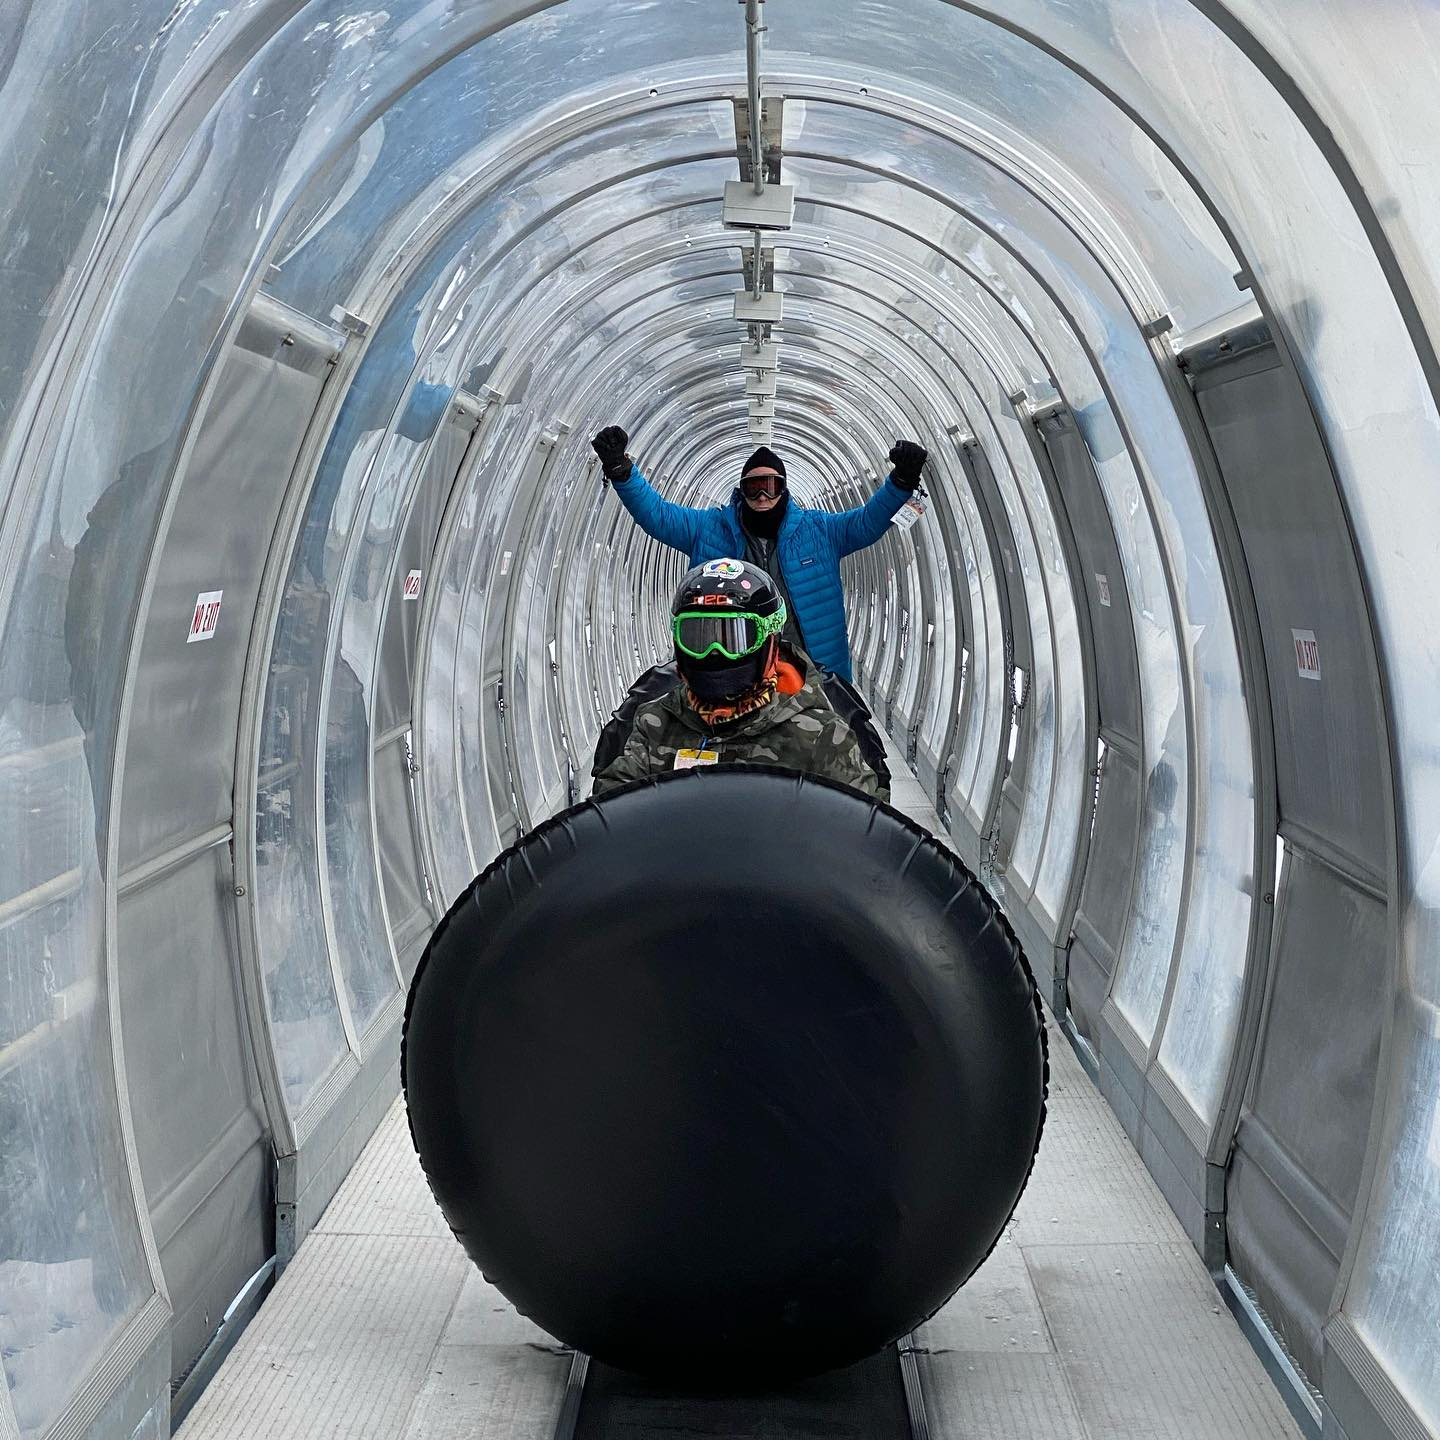 Tubing at Keystone Colorado- you get to ride up the mountain on this magic carpet ride in an enclosed tunnel.  So no work to get back up the hill and great fun sliding down on tubes.  This was a great family activity and you get to ride up the mountain in the gondola. #keystonetubing #tubingfun #tubingincolorado #winteractivitiesforkids